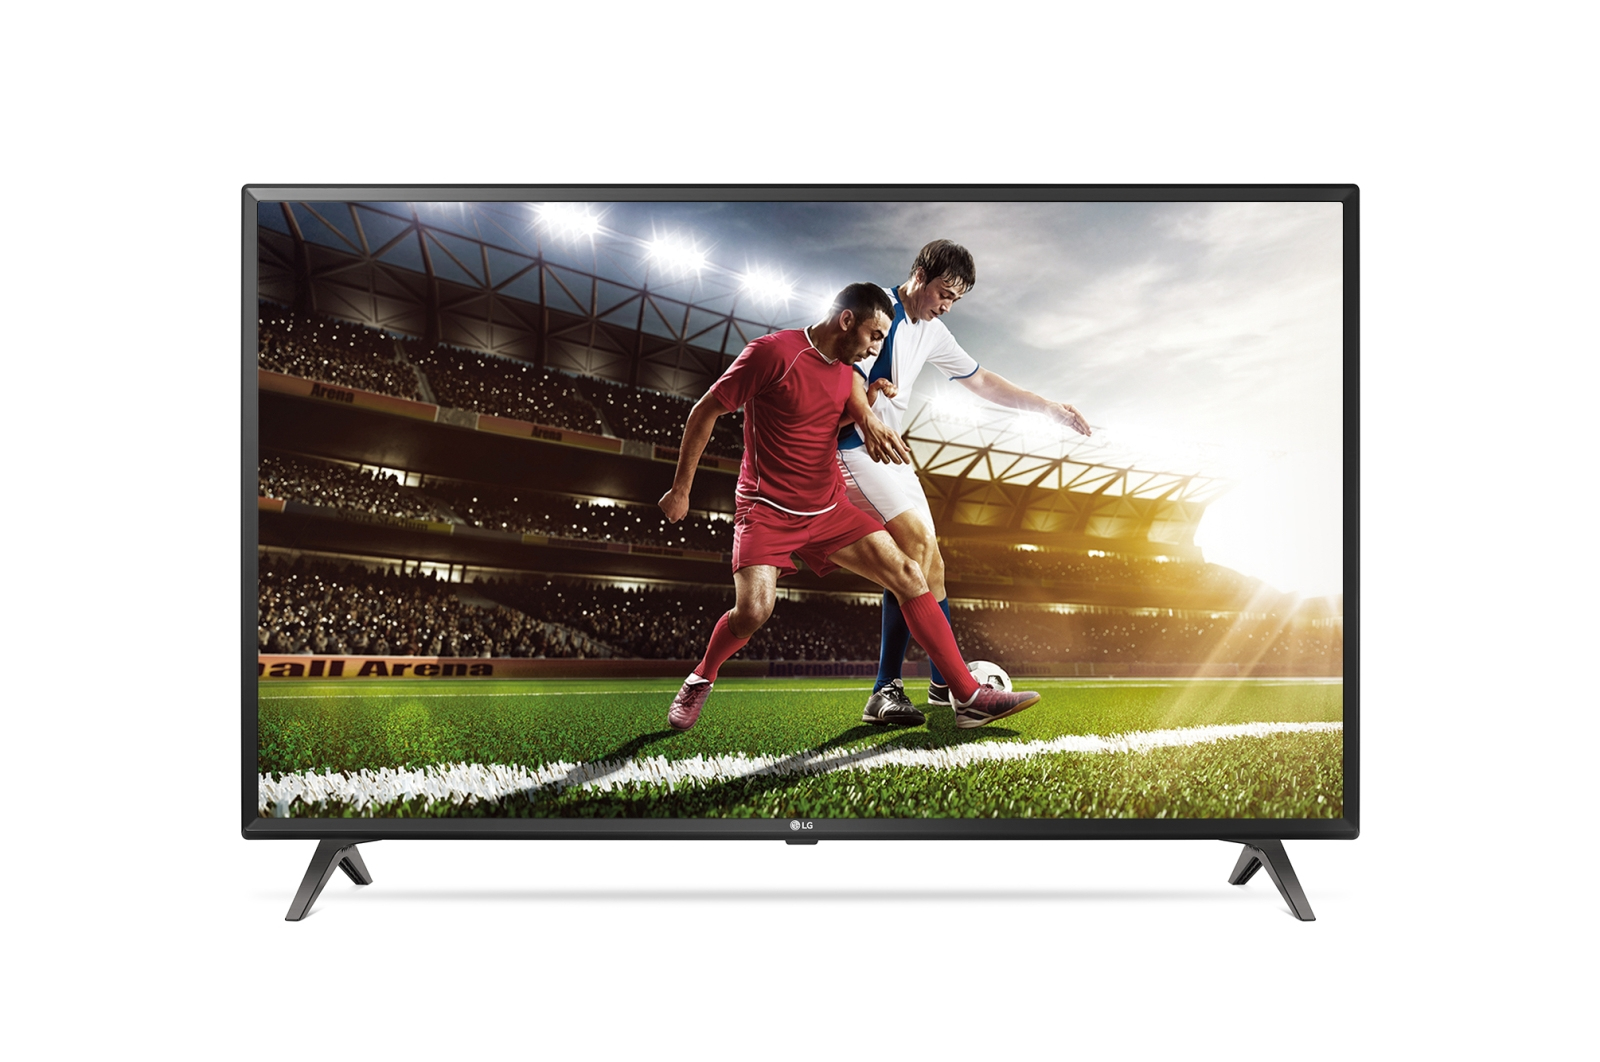 Direct LED Tv - 60uu640c - 60in - 3840 X 2160 (ultra Hd)